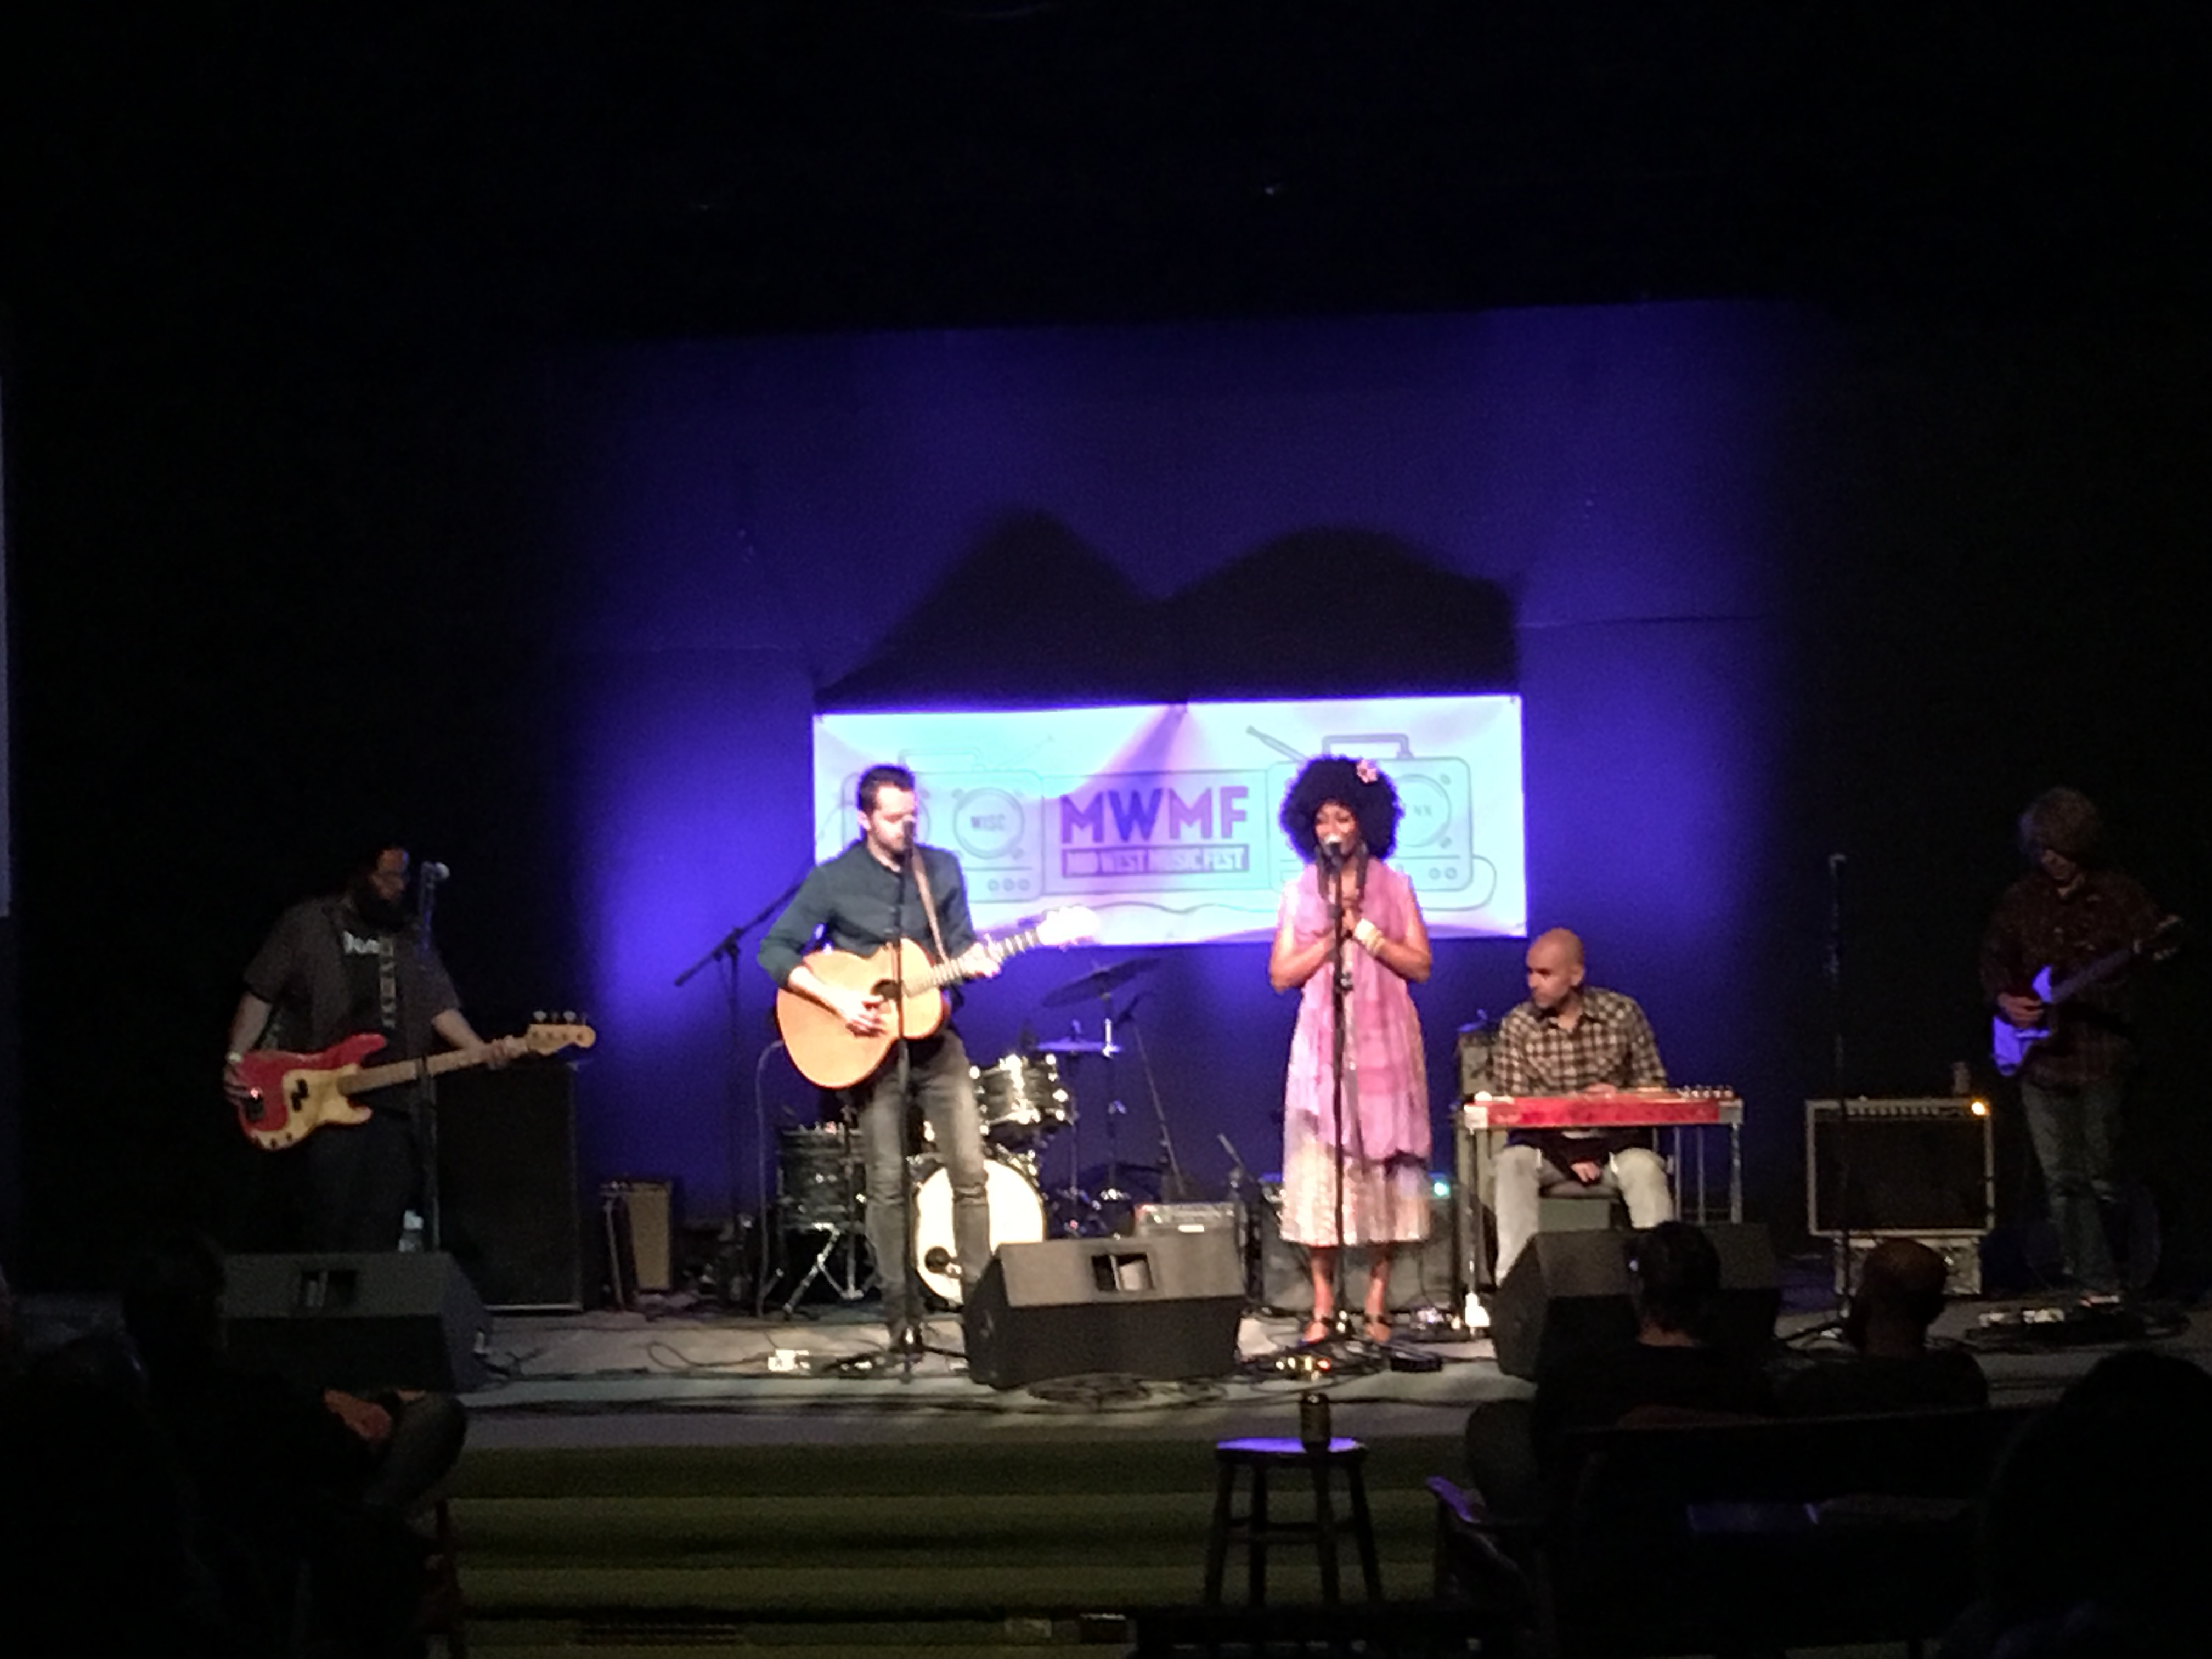 The Live Feed Presents: Romantica at Midwest Music Fest